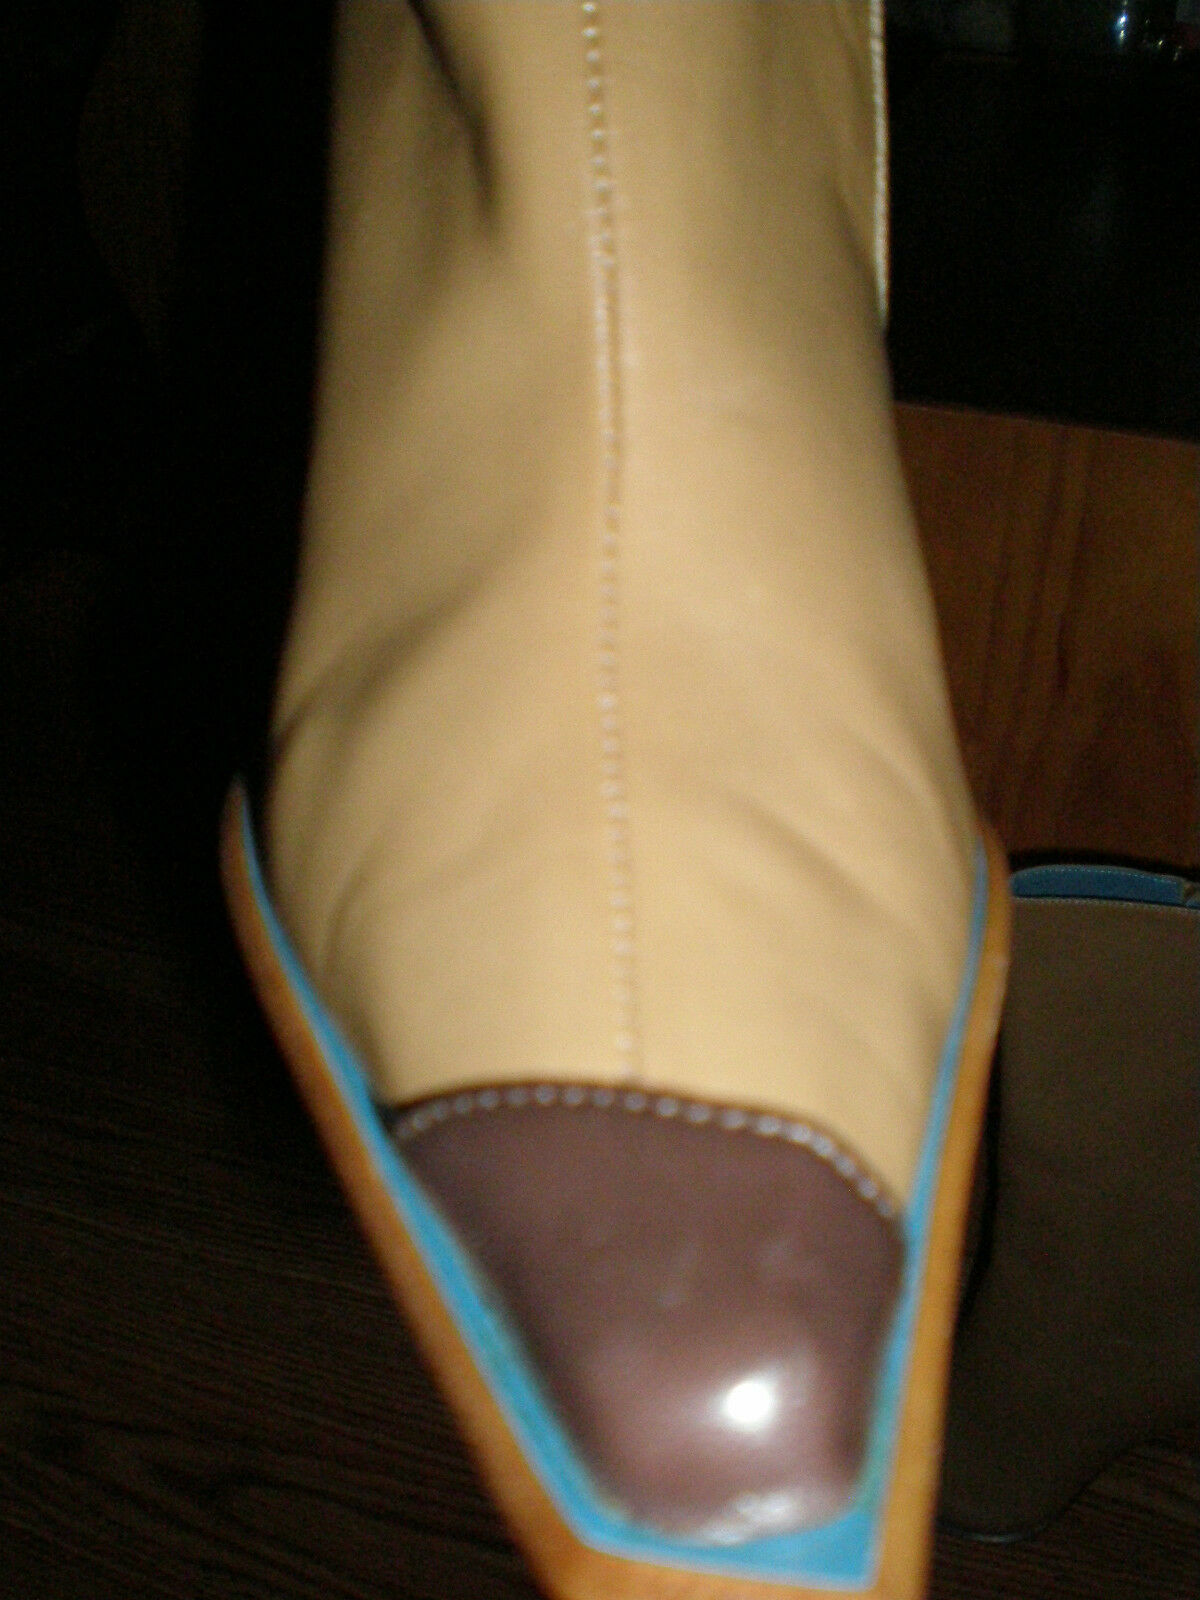 GENUINE ITALIAN TAN LEATHER BOOTS, SIZE 6.5, NEW IN BOX, GENUINE LEATHER